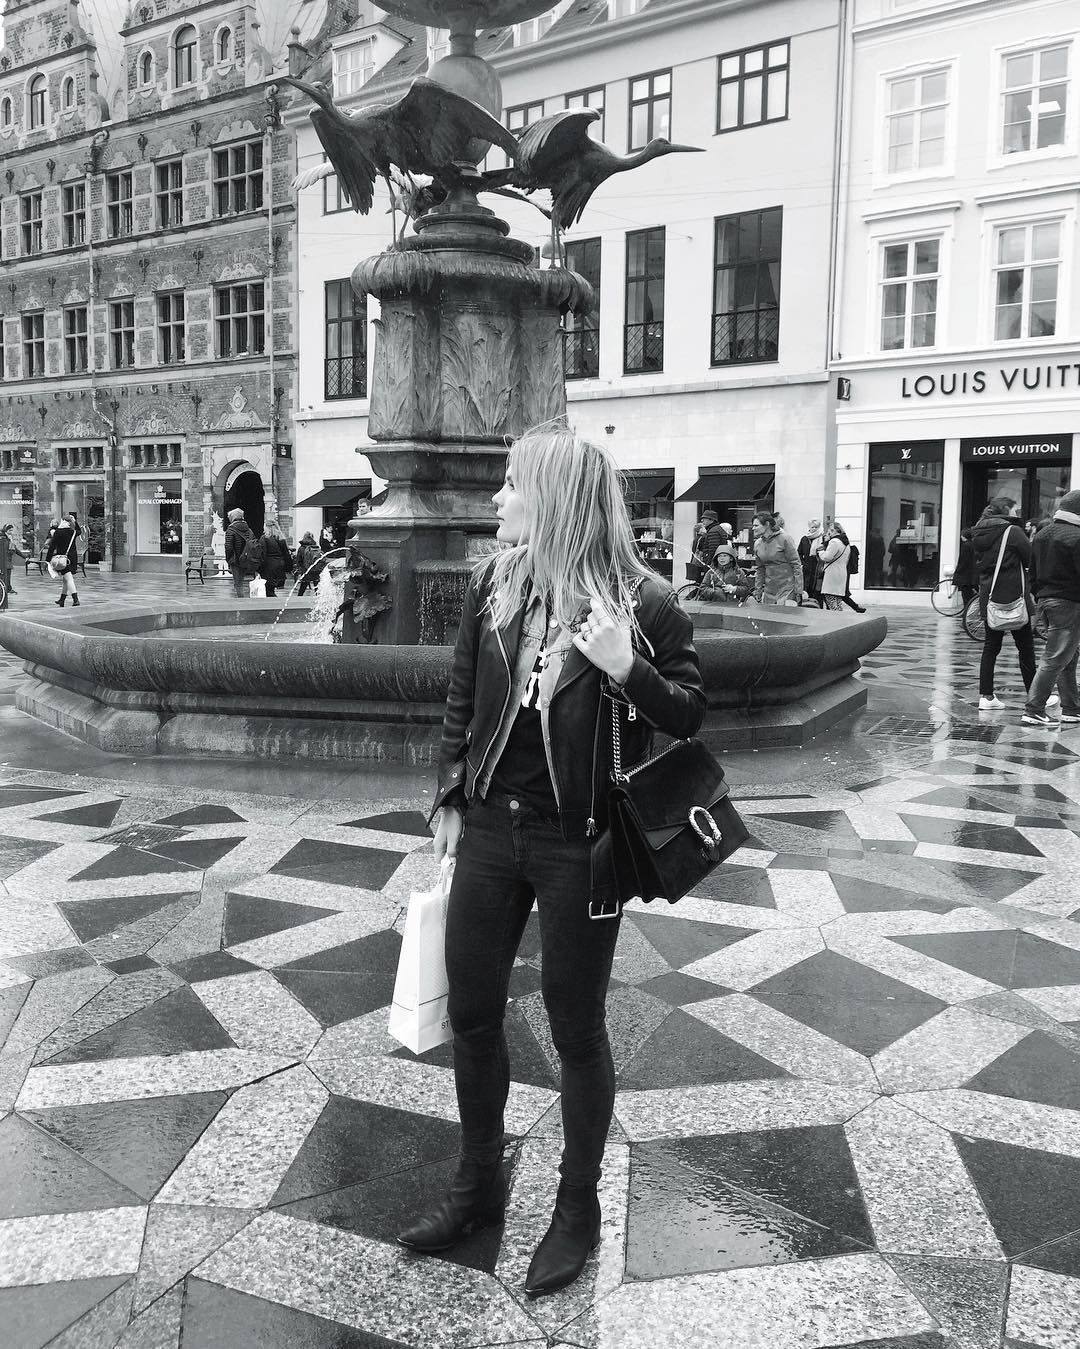 Throwback to windy Copenhagen  waiting for warm spring days